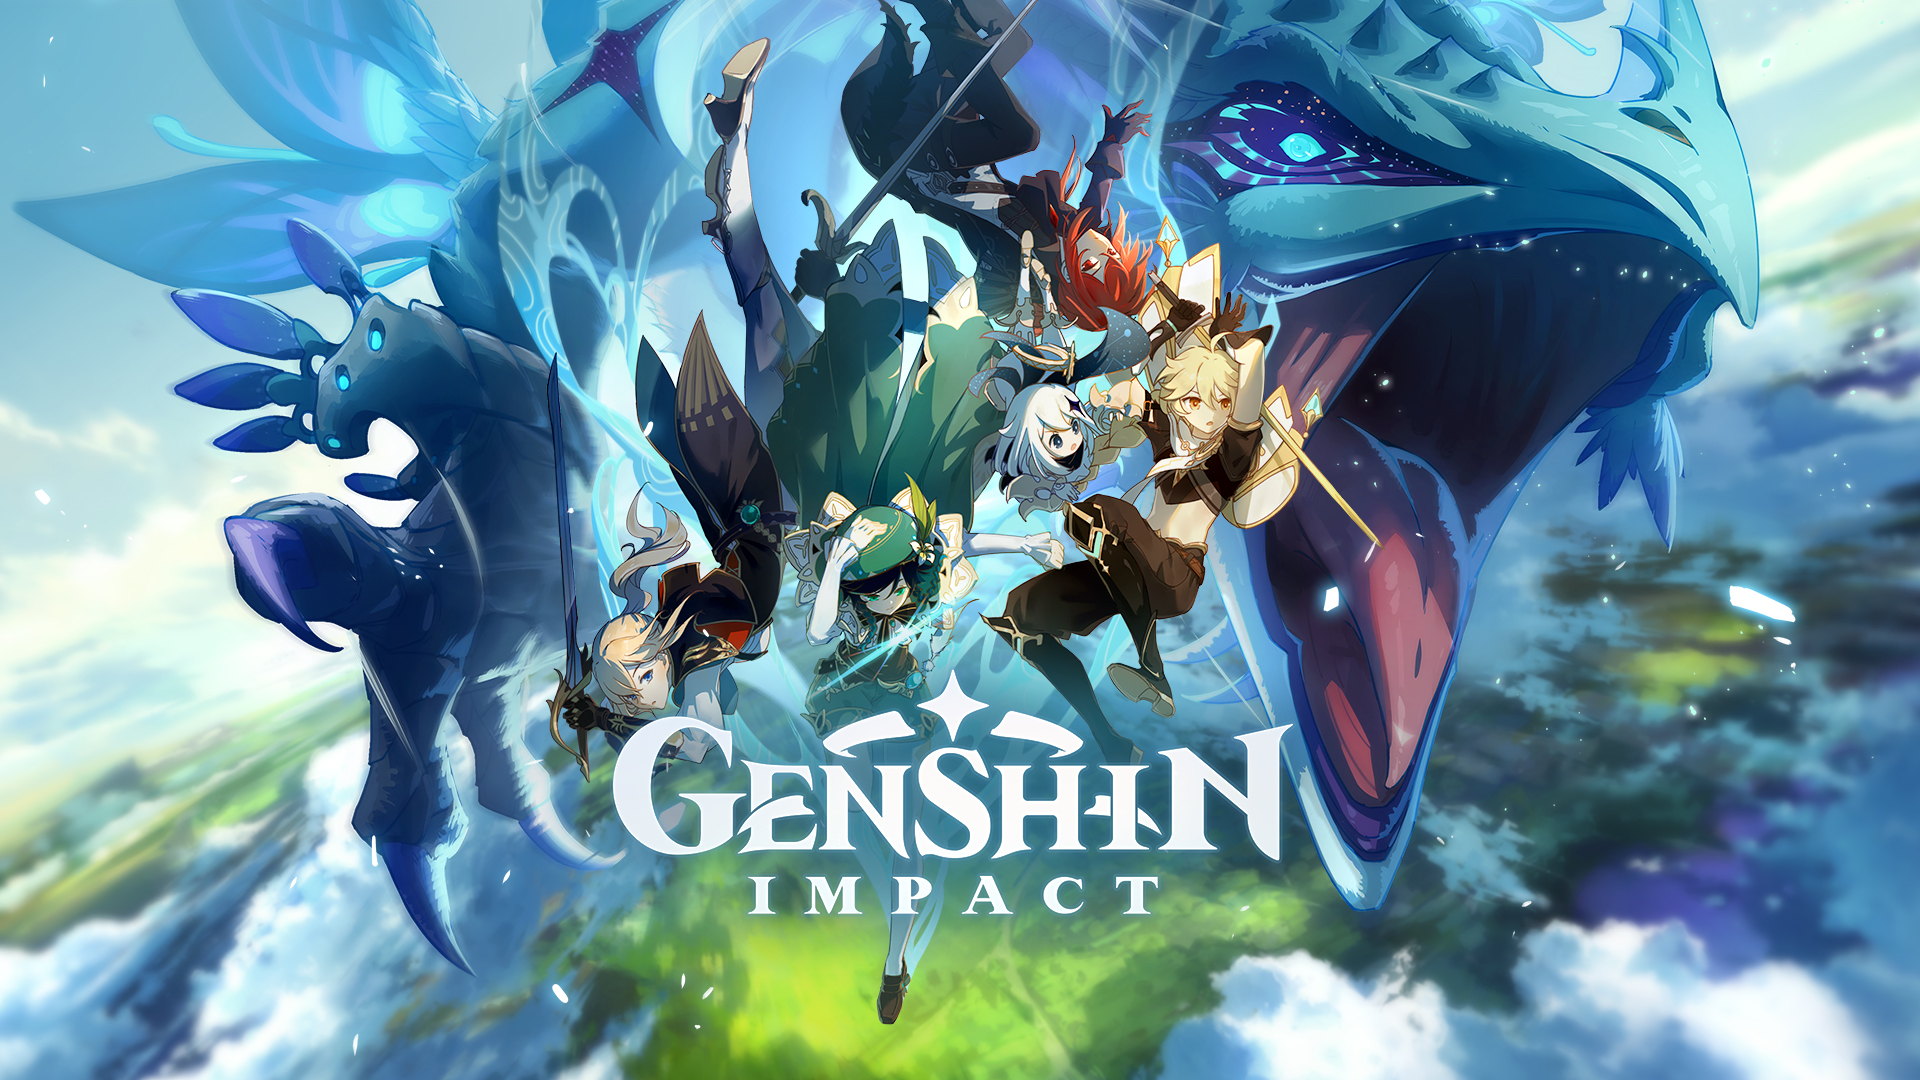 Breath of the Wild-Inspired RPG Genshin Impact Gets a Release Date